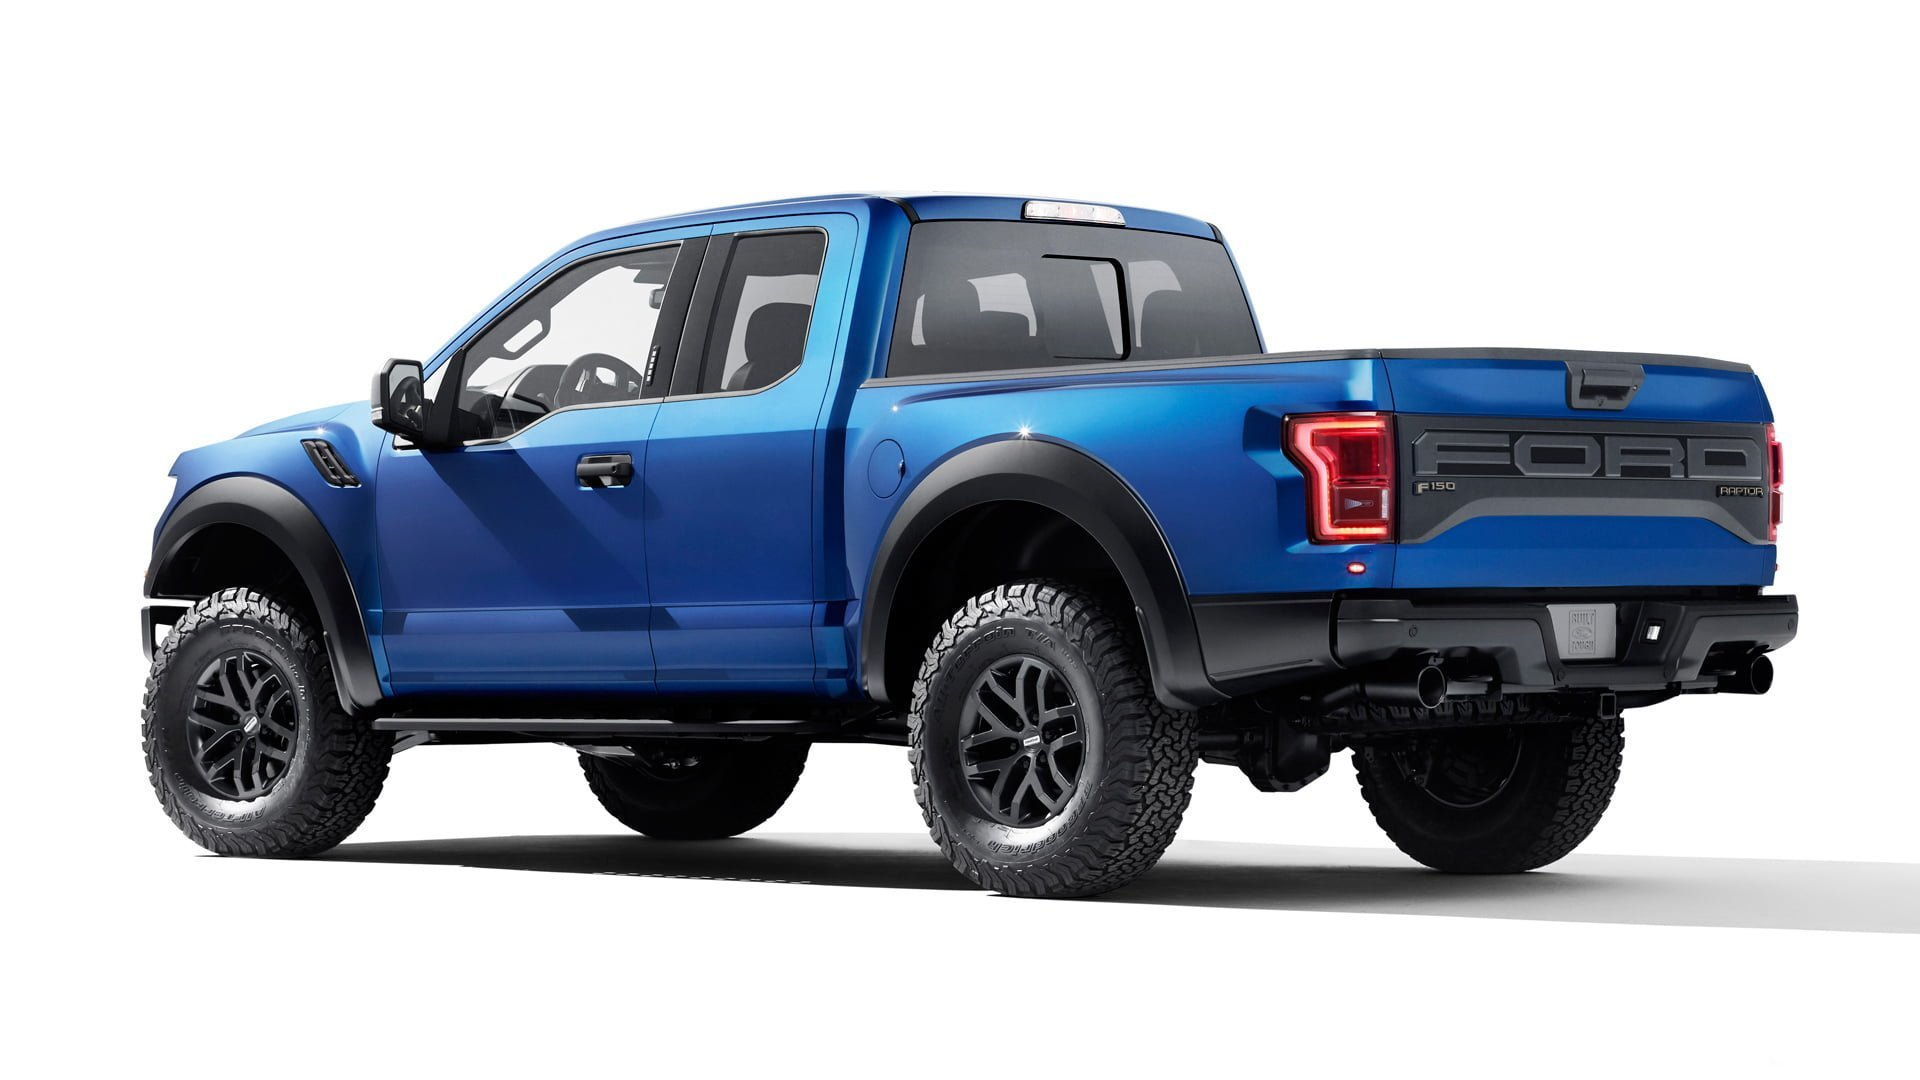 Metalik Ford Raptor